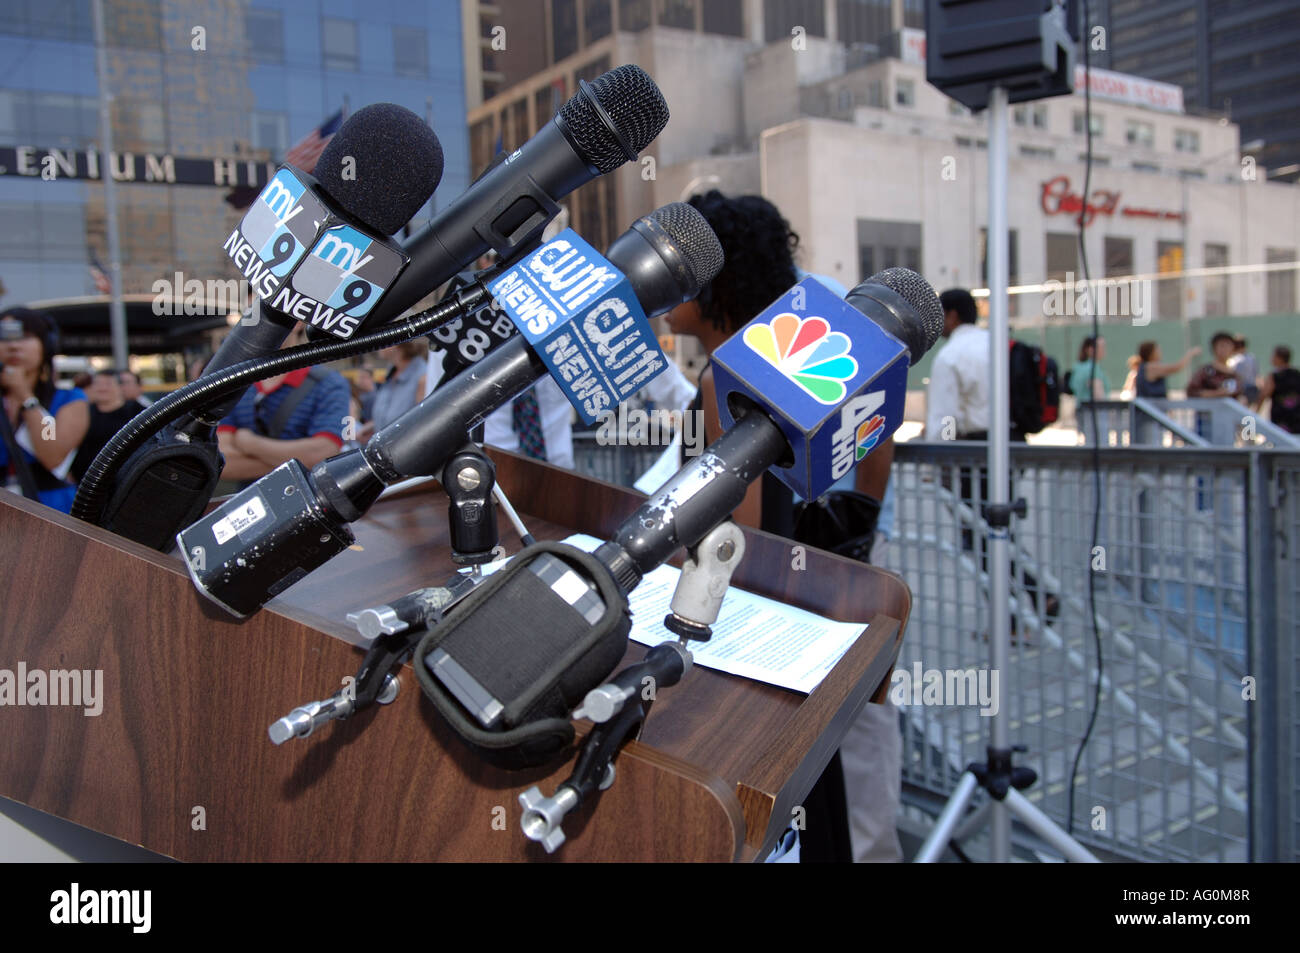 Collection of television station microphones on a podium - Stock Image